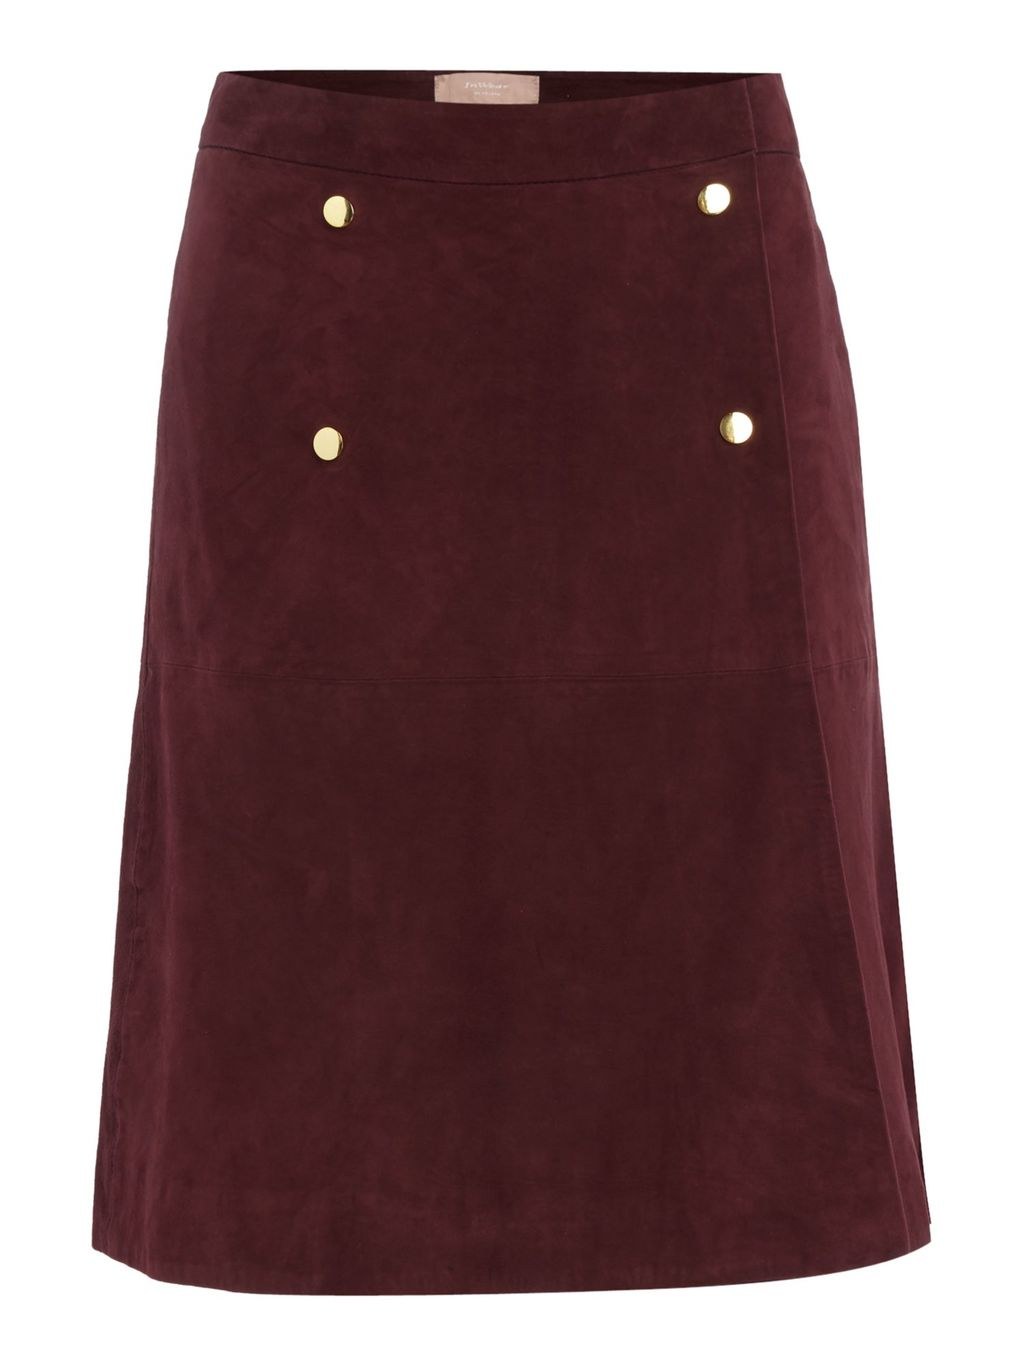 Suede Button Skirt, Burgundy - pattern: plain; style: straight; waist: mid/regular rise; predominant colour: burgundy; occasions: casual; length: just above the knee; fibres: leather - 100%; fit: straight cut; pattern type: fabric; texture group: suede; season: a/w 2016; wardrobe: highlight